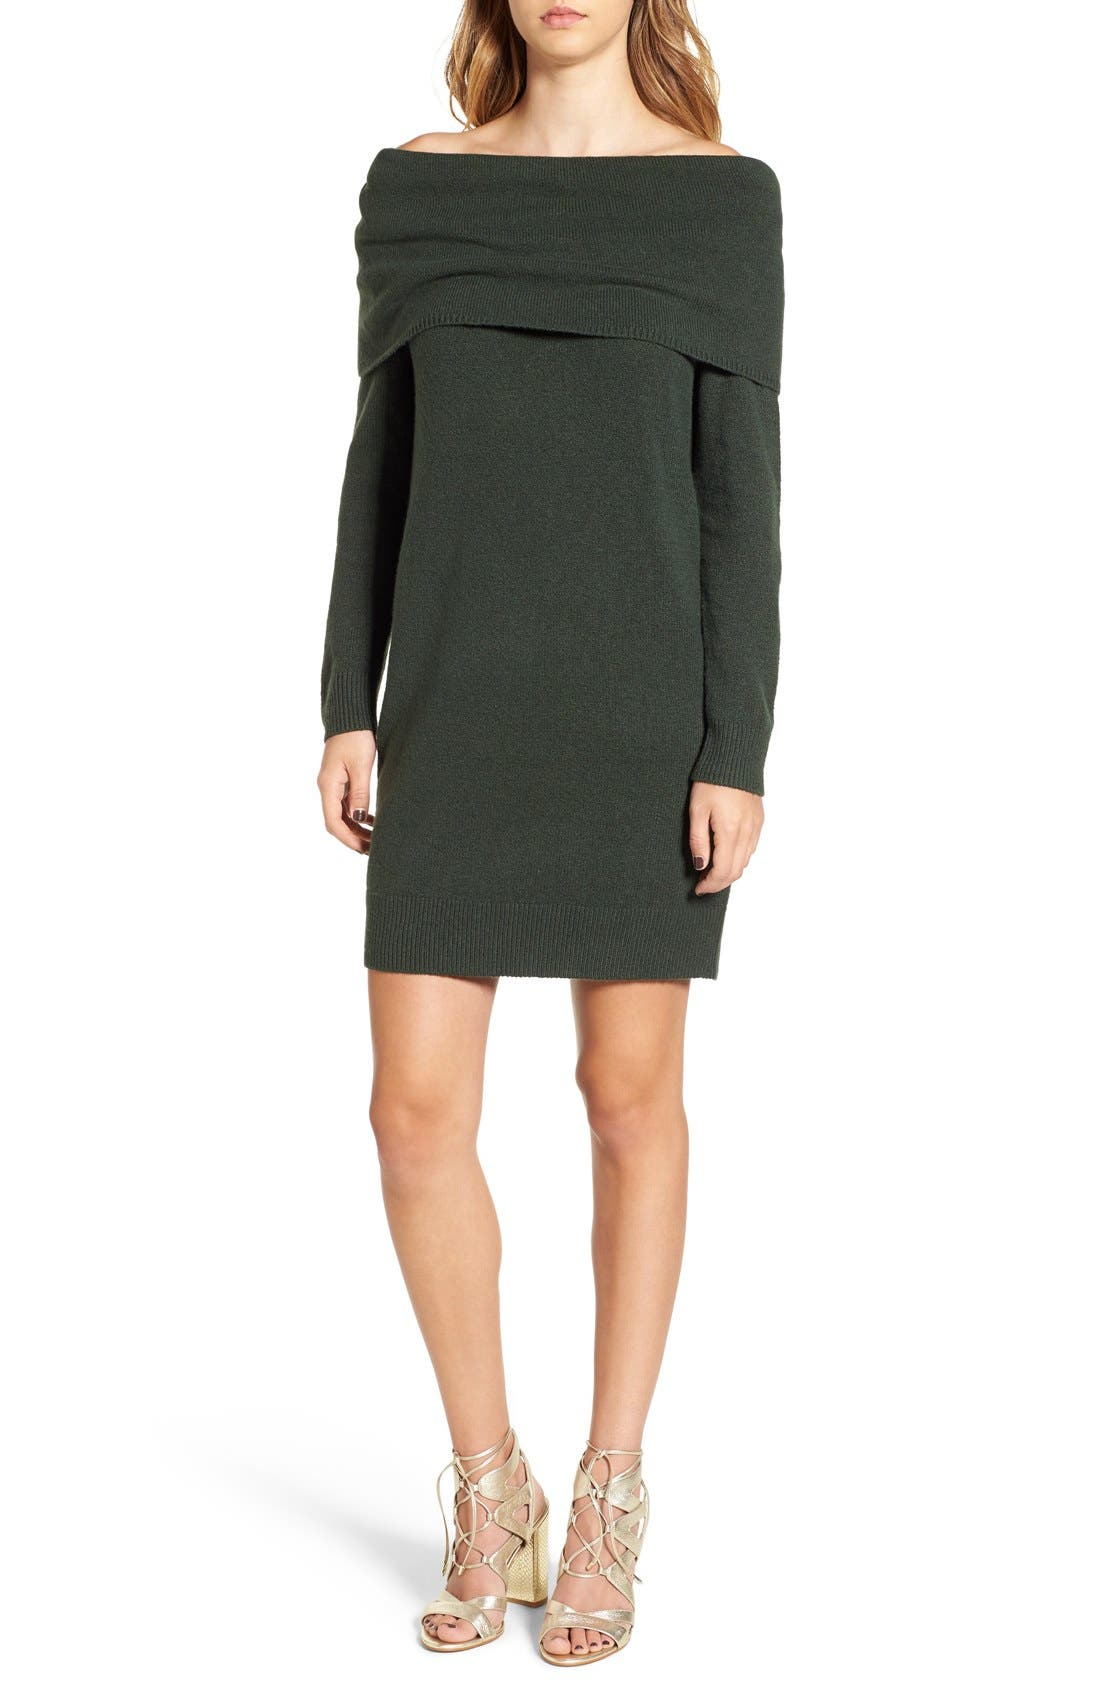 Off the Shoulder Sweater Dress,                             Main thumbnail 1, color,                             301